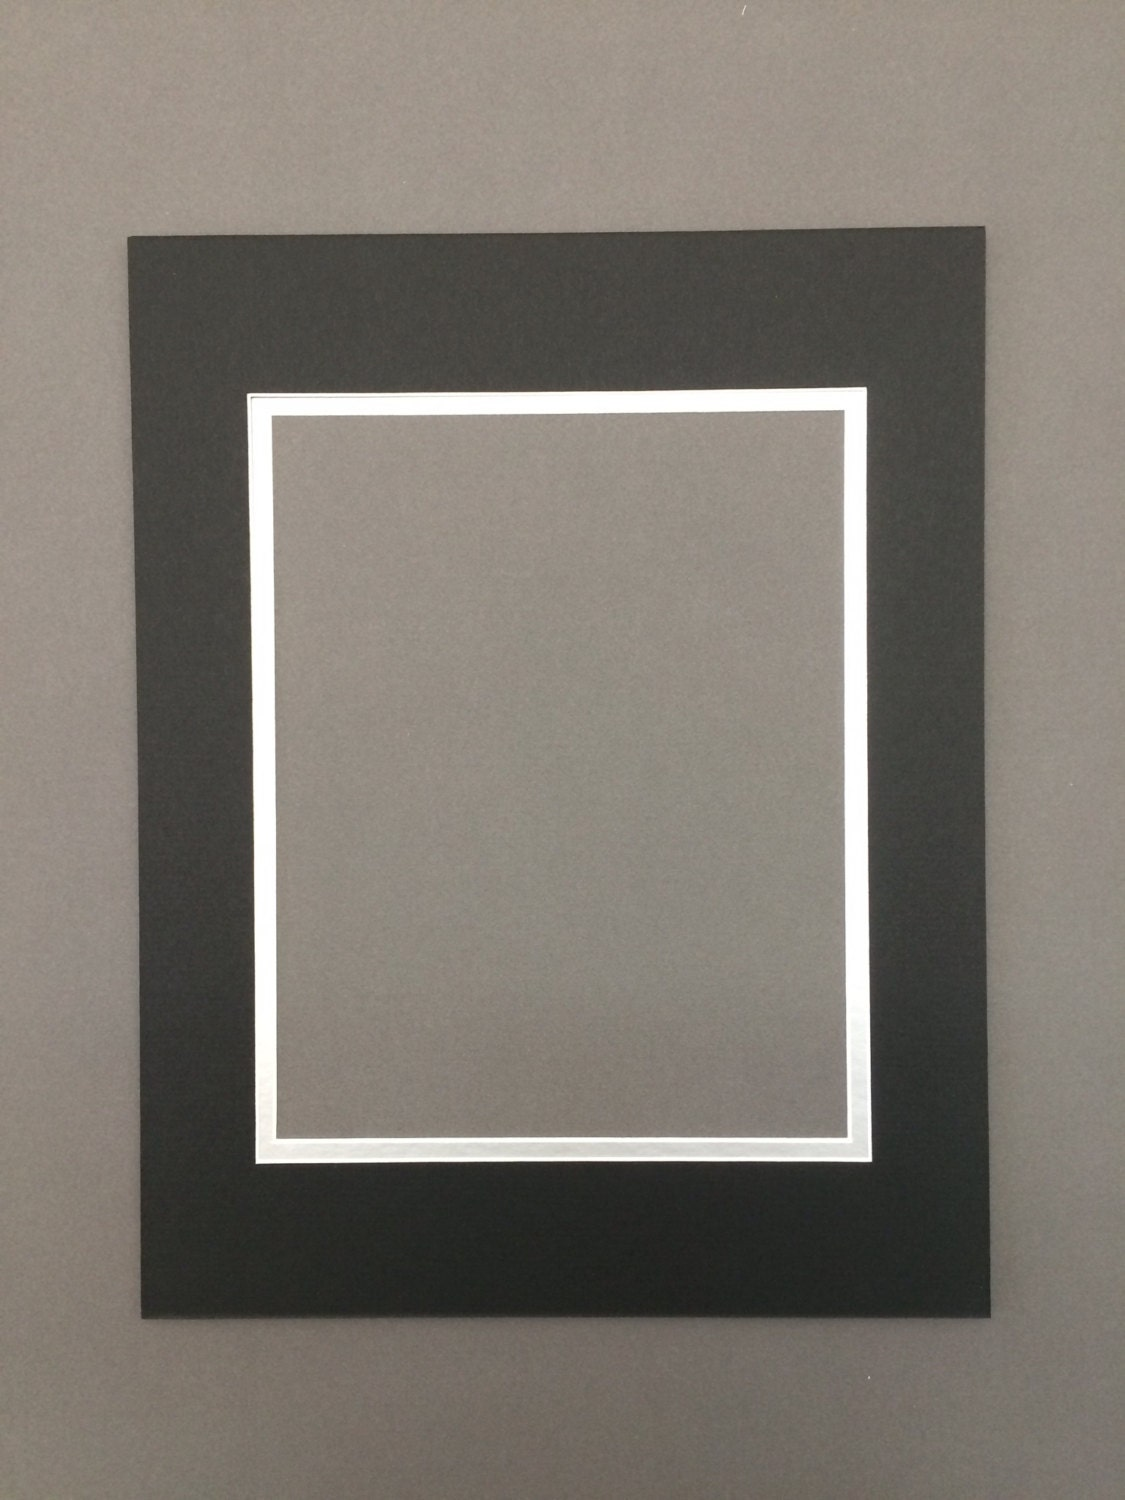 16x20 Black Amp Silver Double Picture Mat With White Core